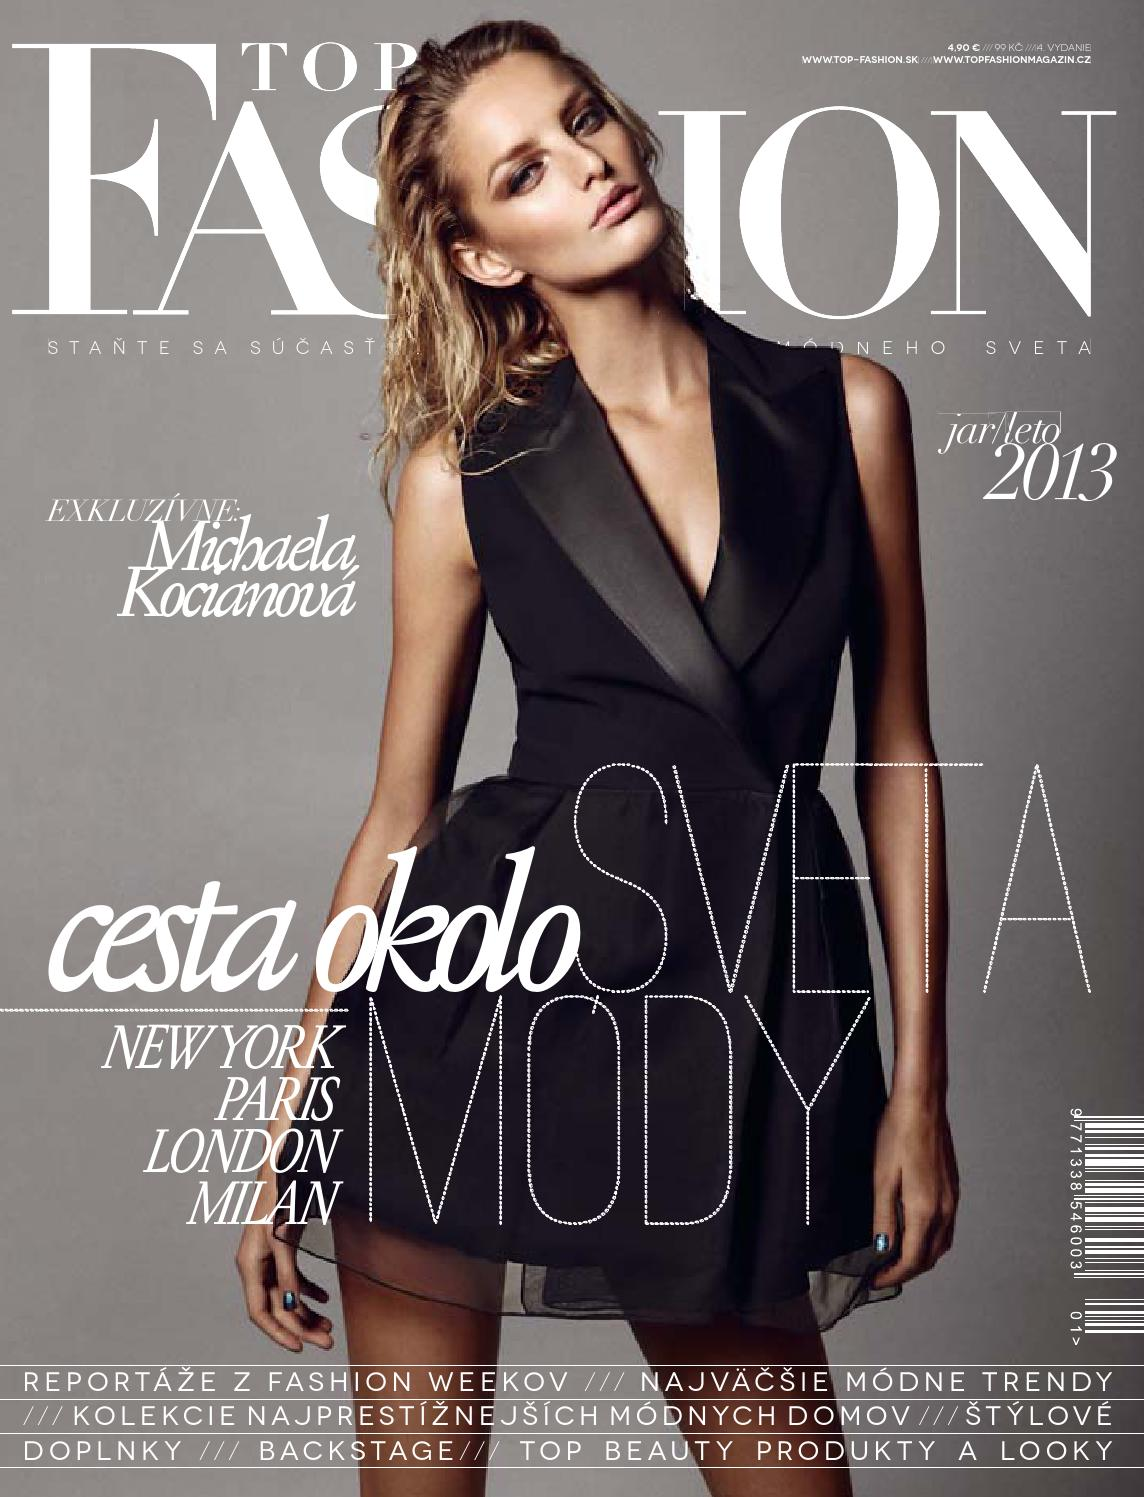 3257b44a4f3d Top Fashion - vip by Mediast Slovakia - issuu